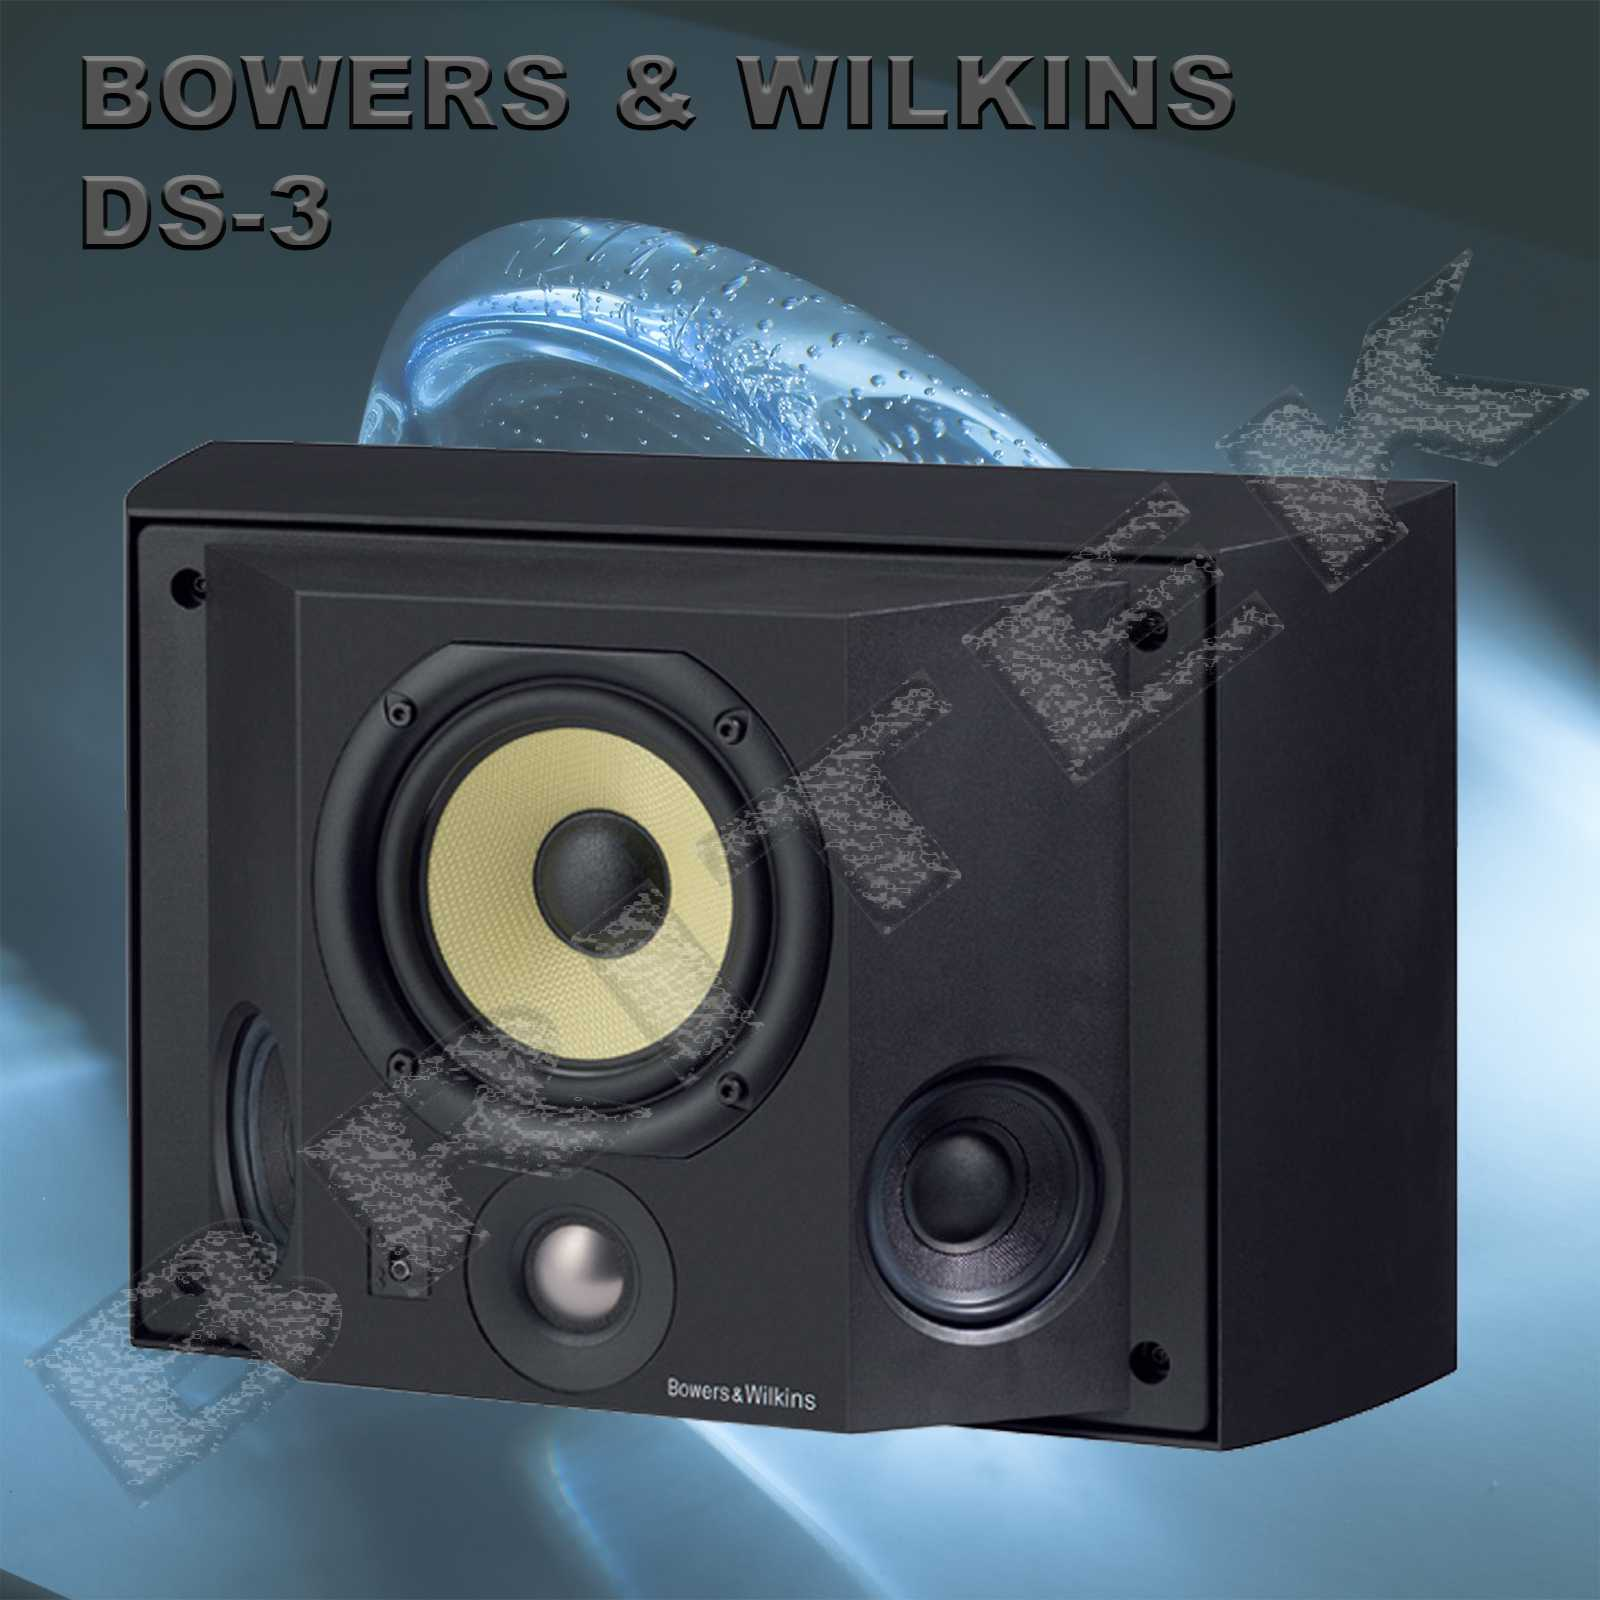 Bowers & Wilkins DS 3